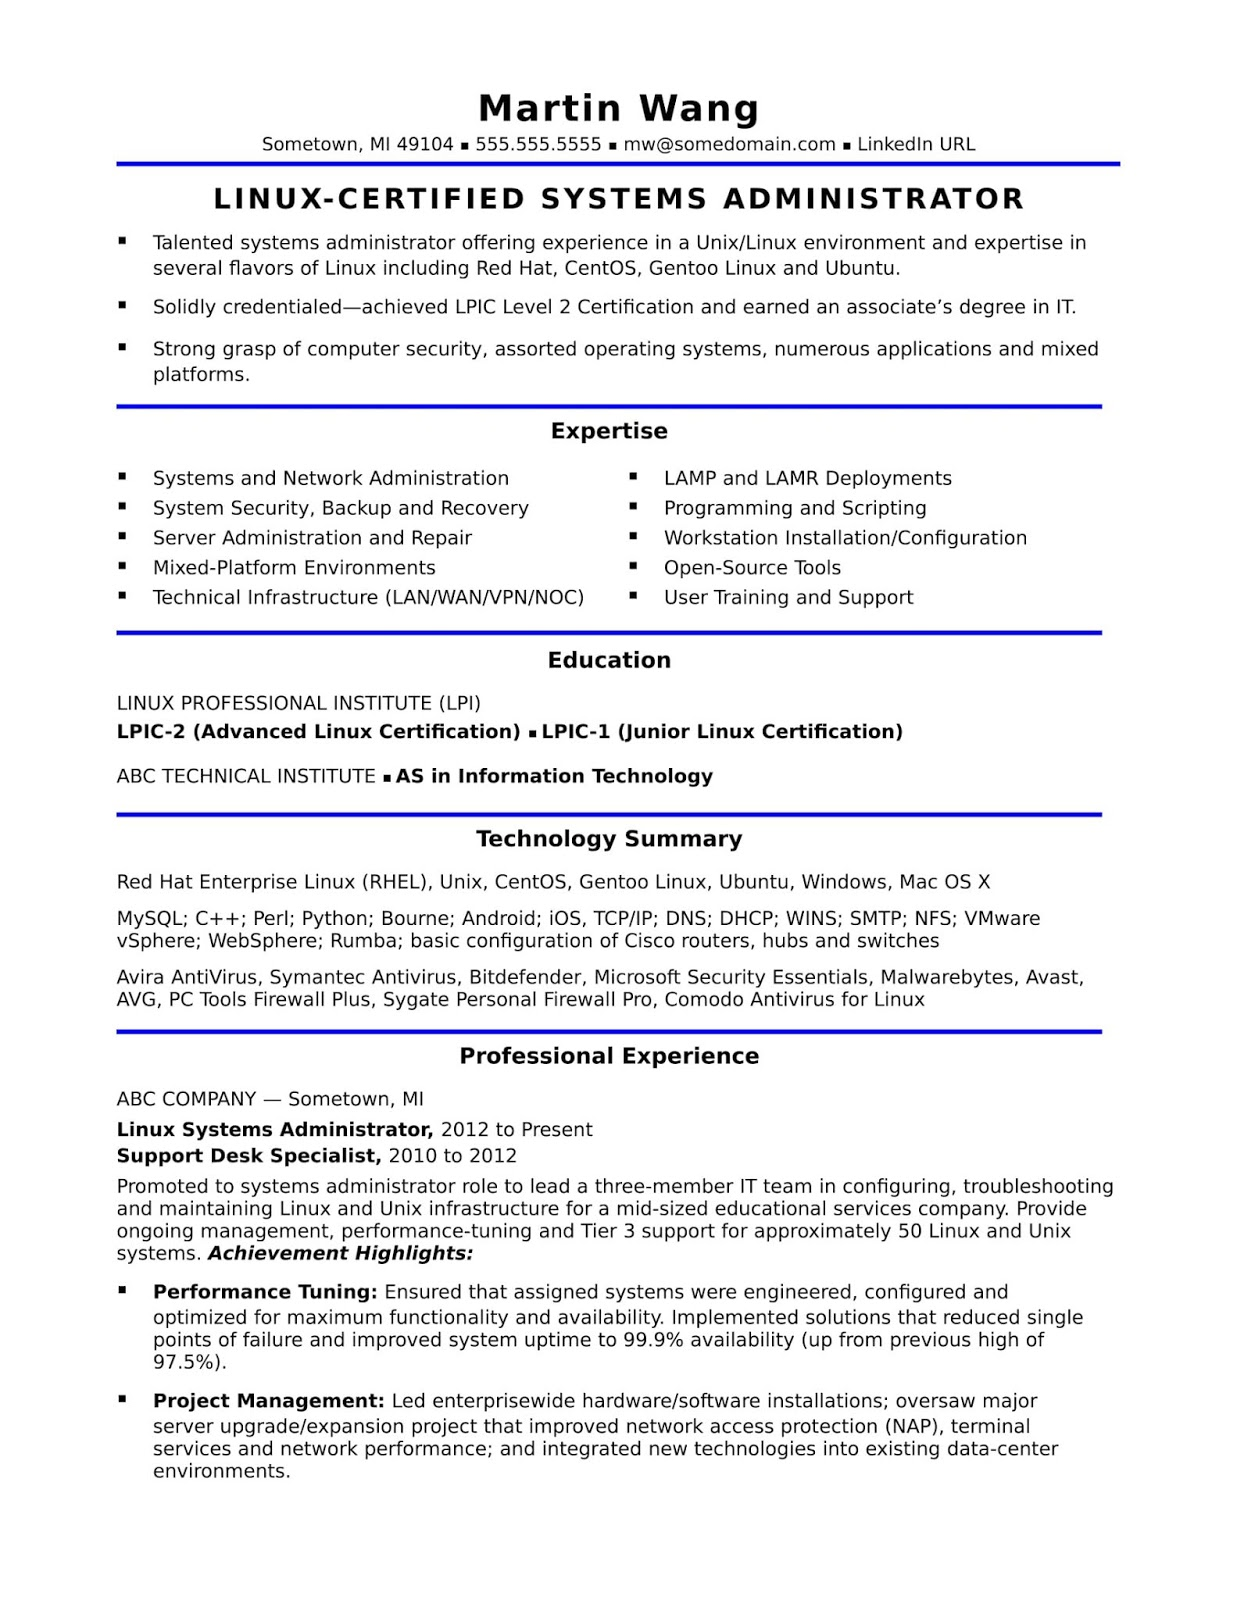 administrator resume sample templates microsoft azure template free for switching careers Resume Microsoft Azure Administrator Sample Resume